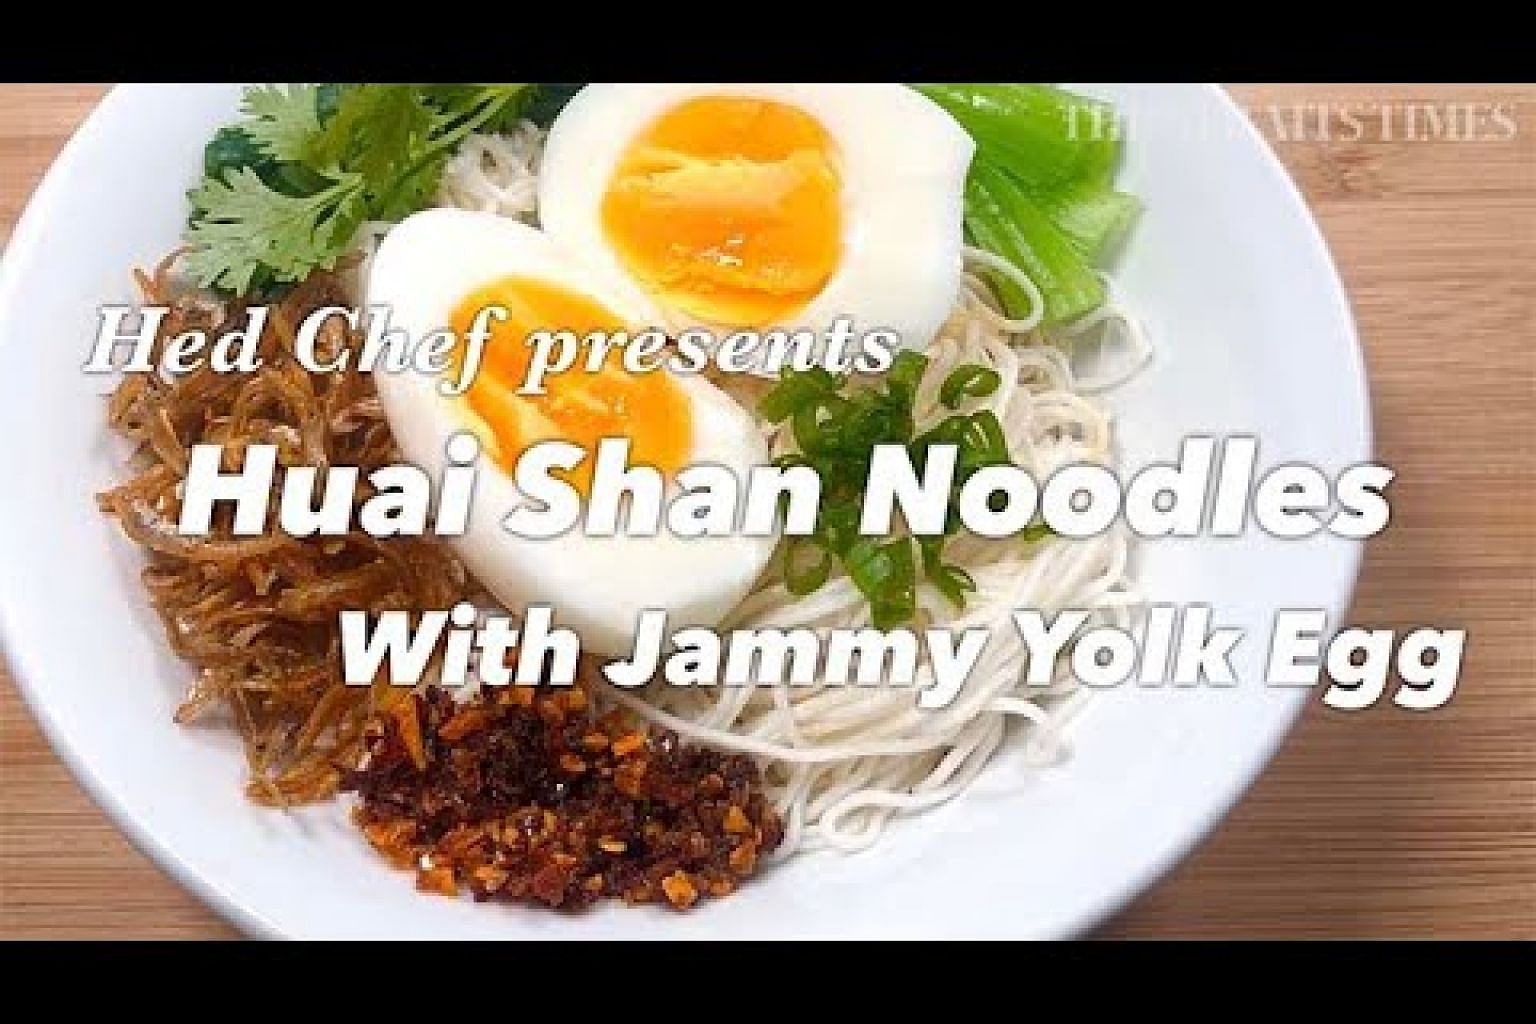 Huai Shan Noodles with Jammy Yolk Egg | Hed Chef | The Straits Times